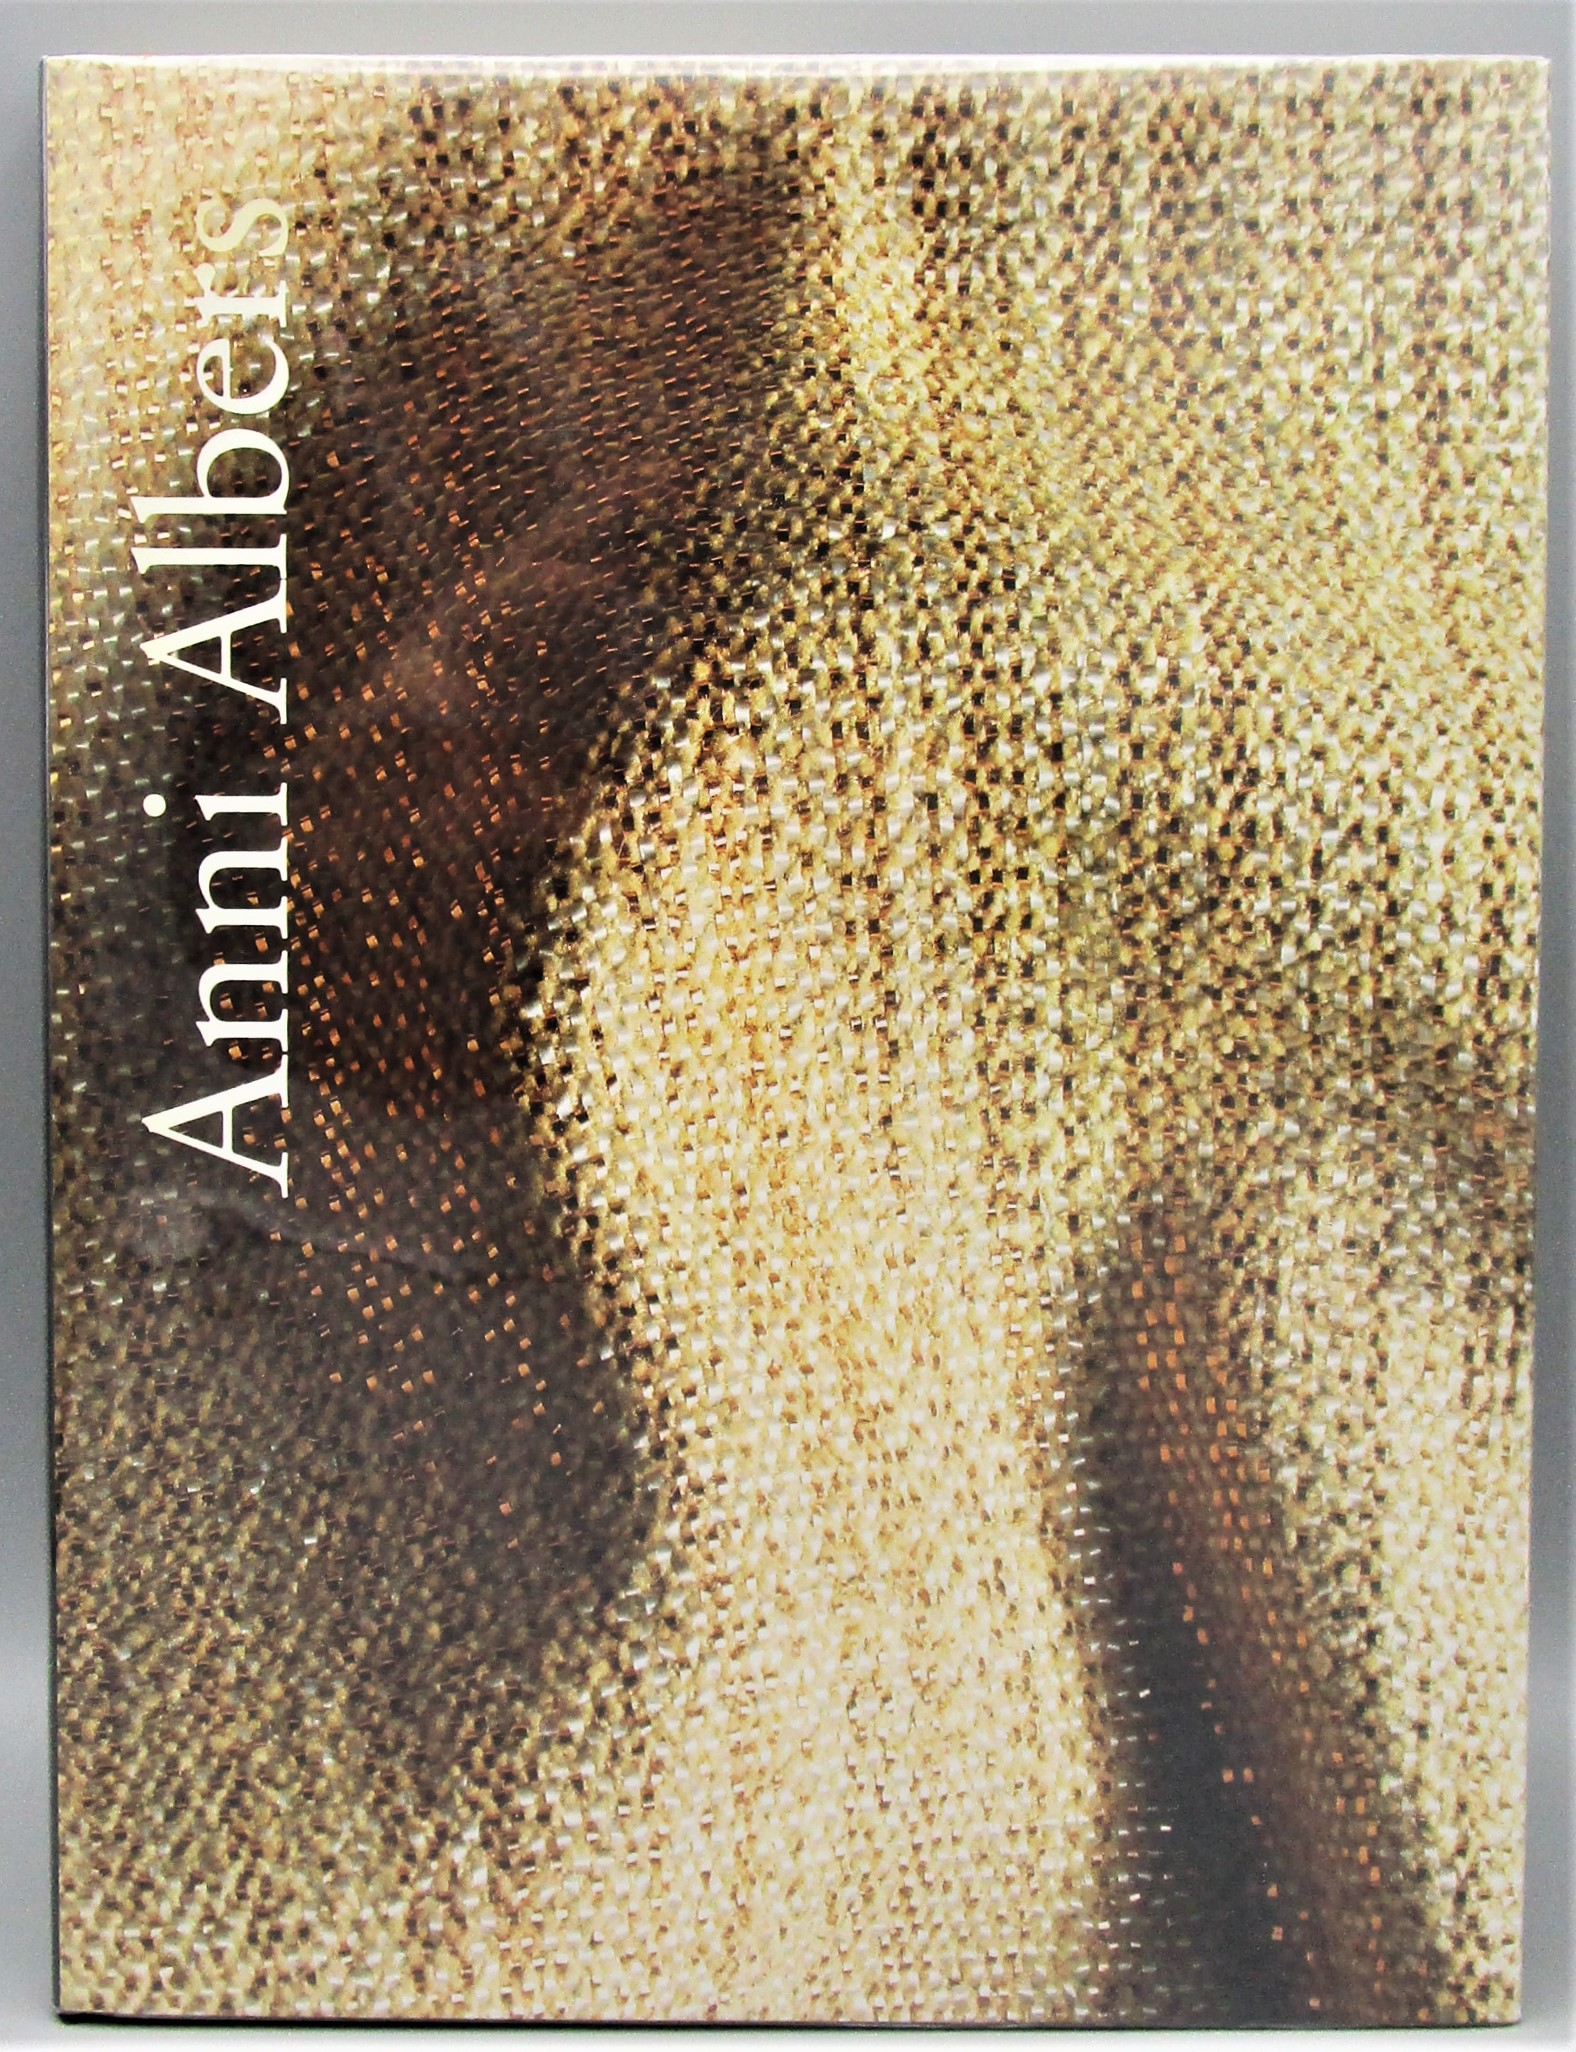 ANNI ALBERS, by N.F. Weber & P.T. Asbaghi - 1999